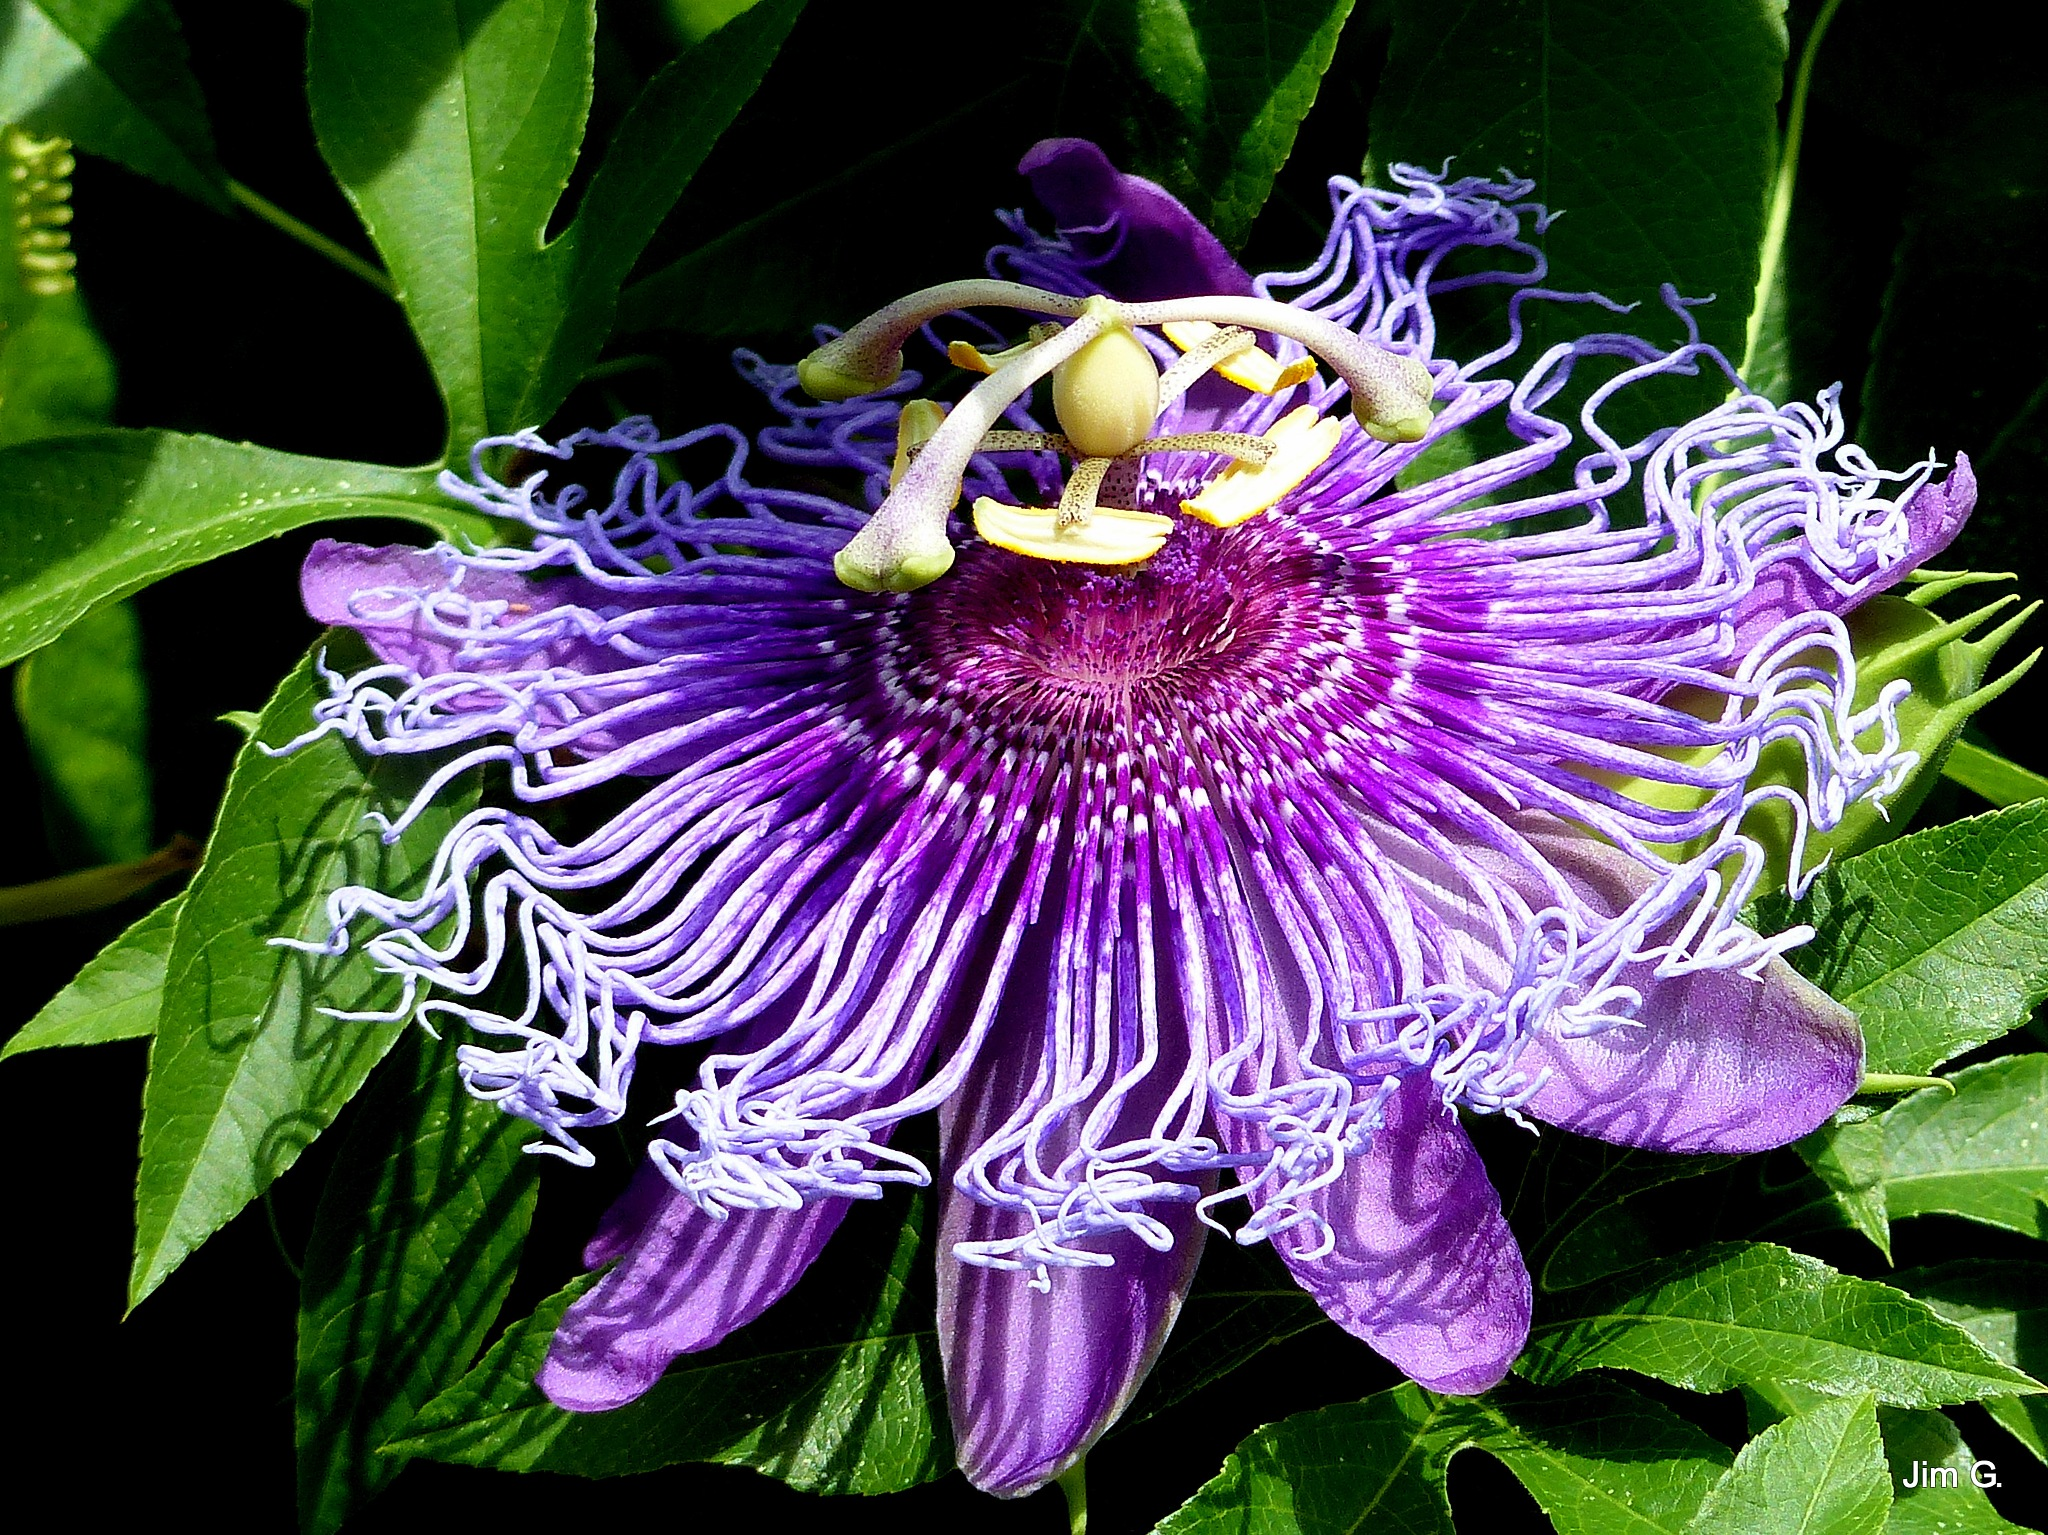 Passion Flower Vine Still Blooming in Florida by Jim Graham